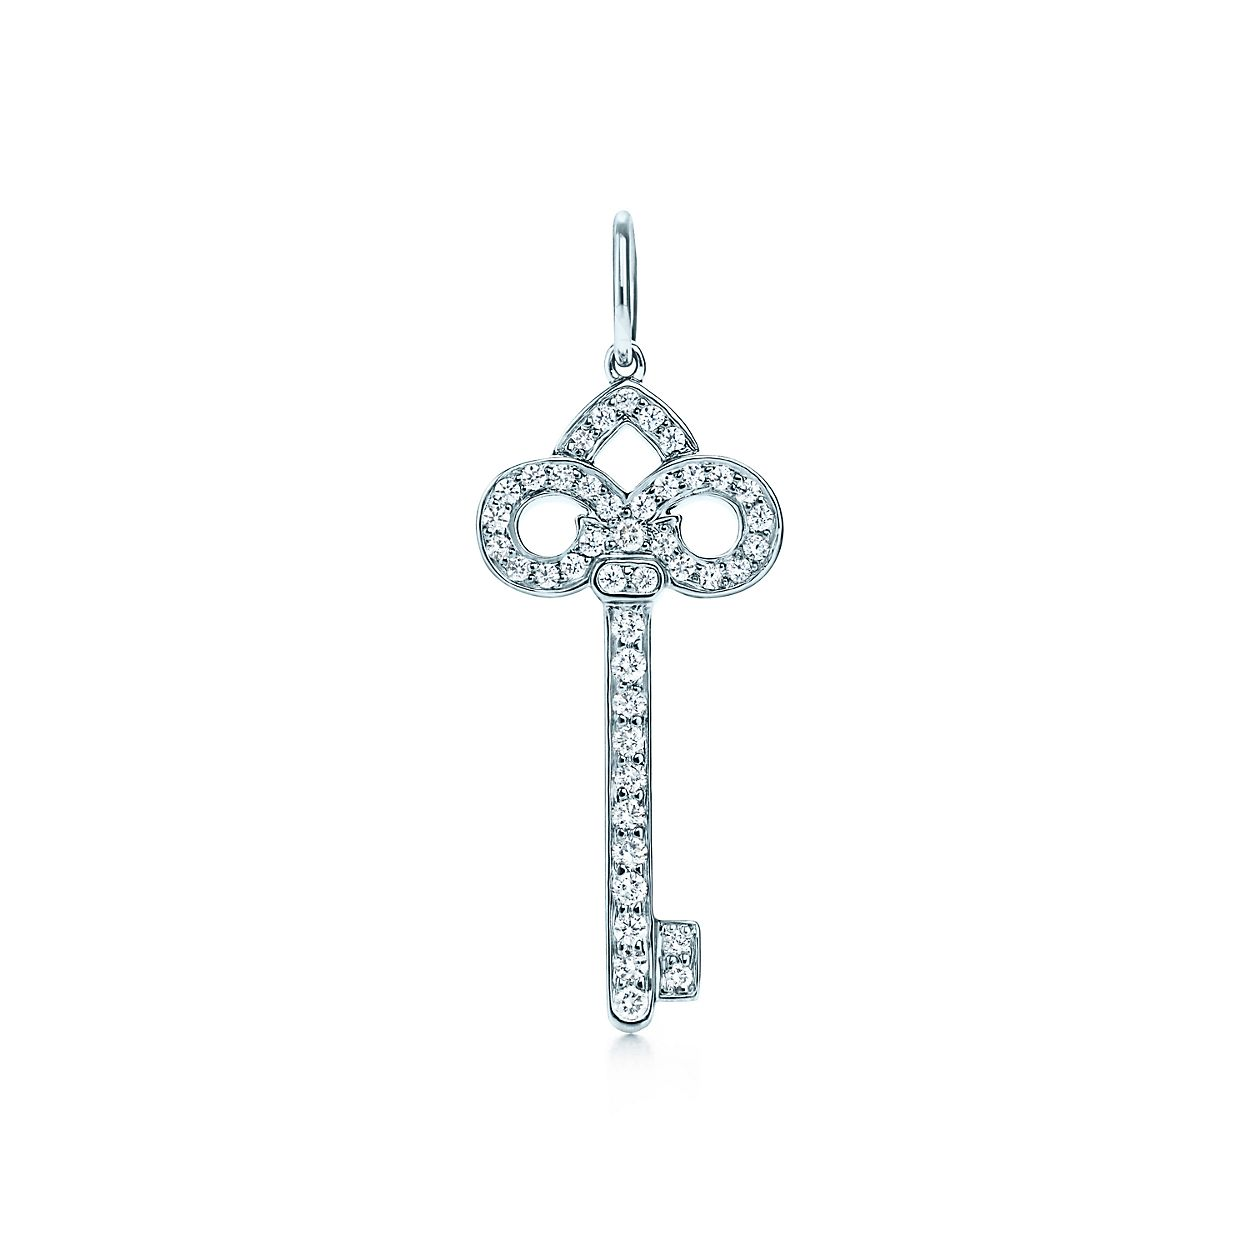 Tiffany keys fleur de lis key pendant in platinum with diamonds tiffany keysfleur de lis key pendant aloadofball Images